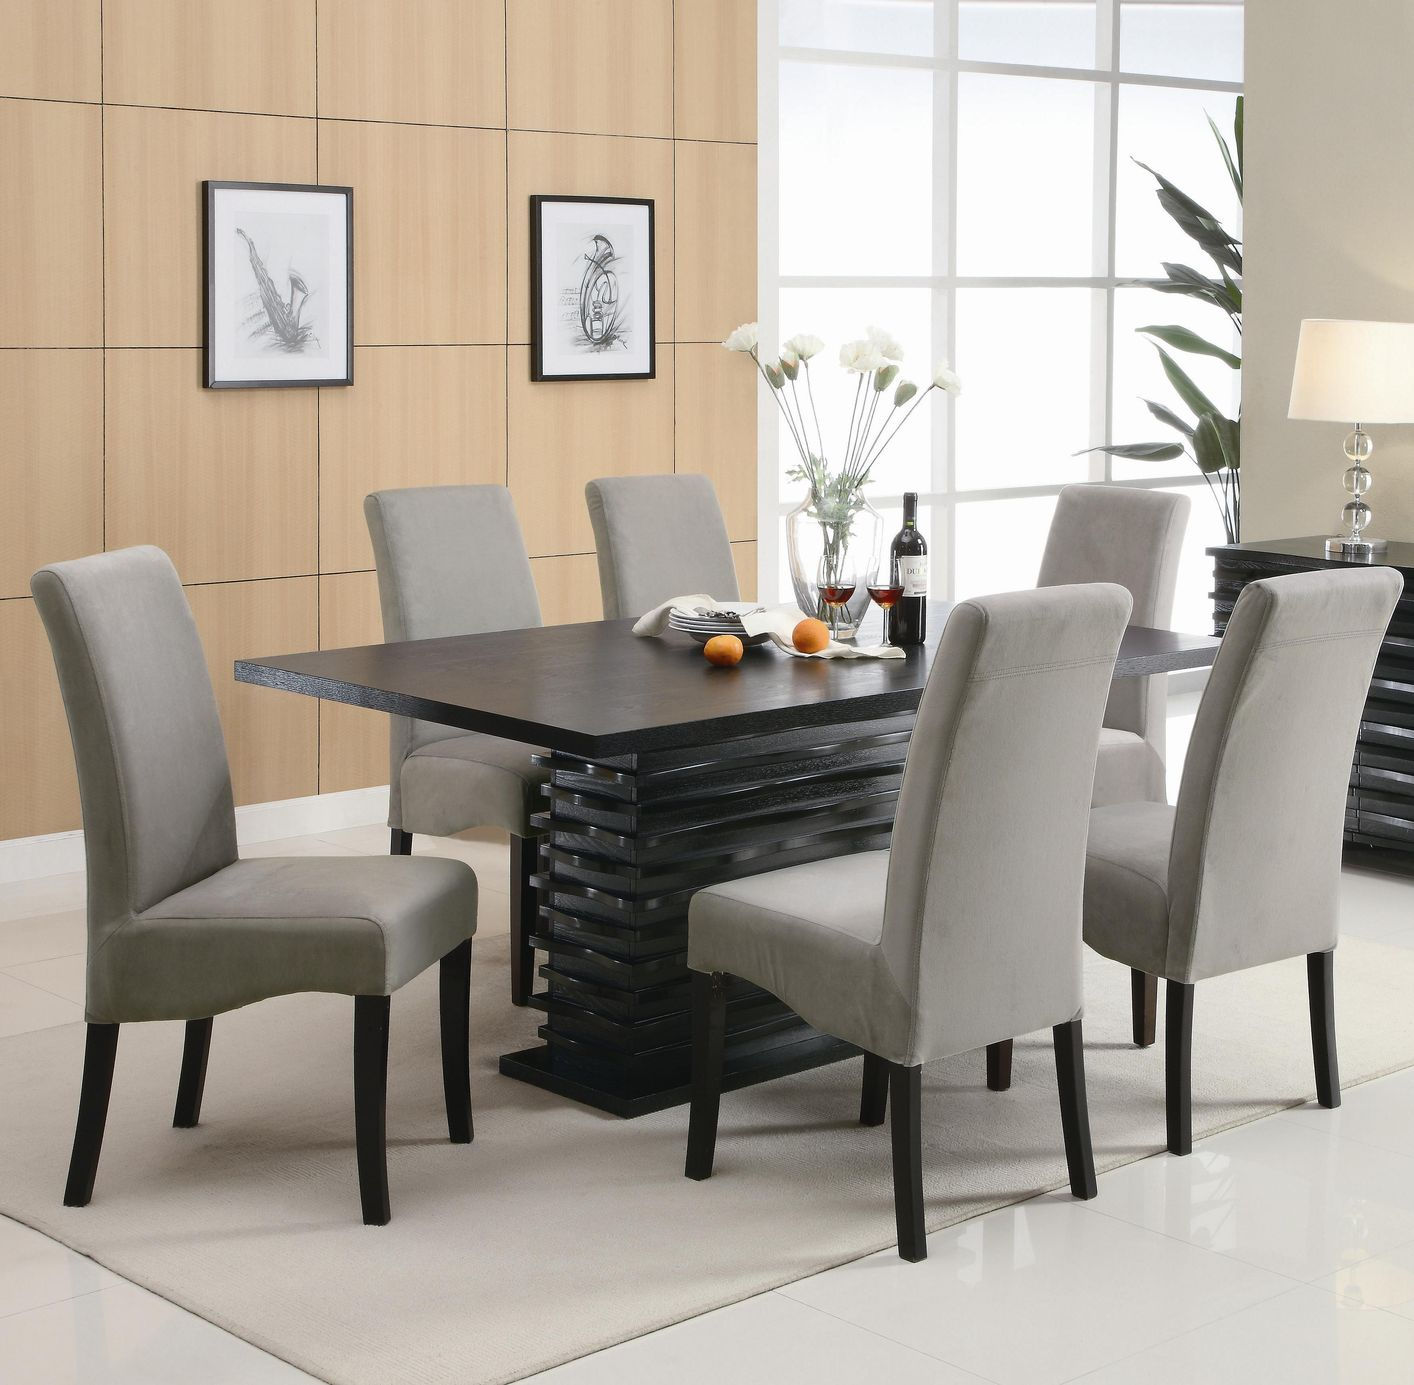 Coaster stanton 102061 102062 black wood dining table set for Black dining table